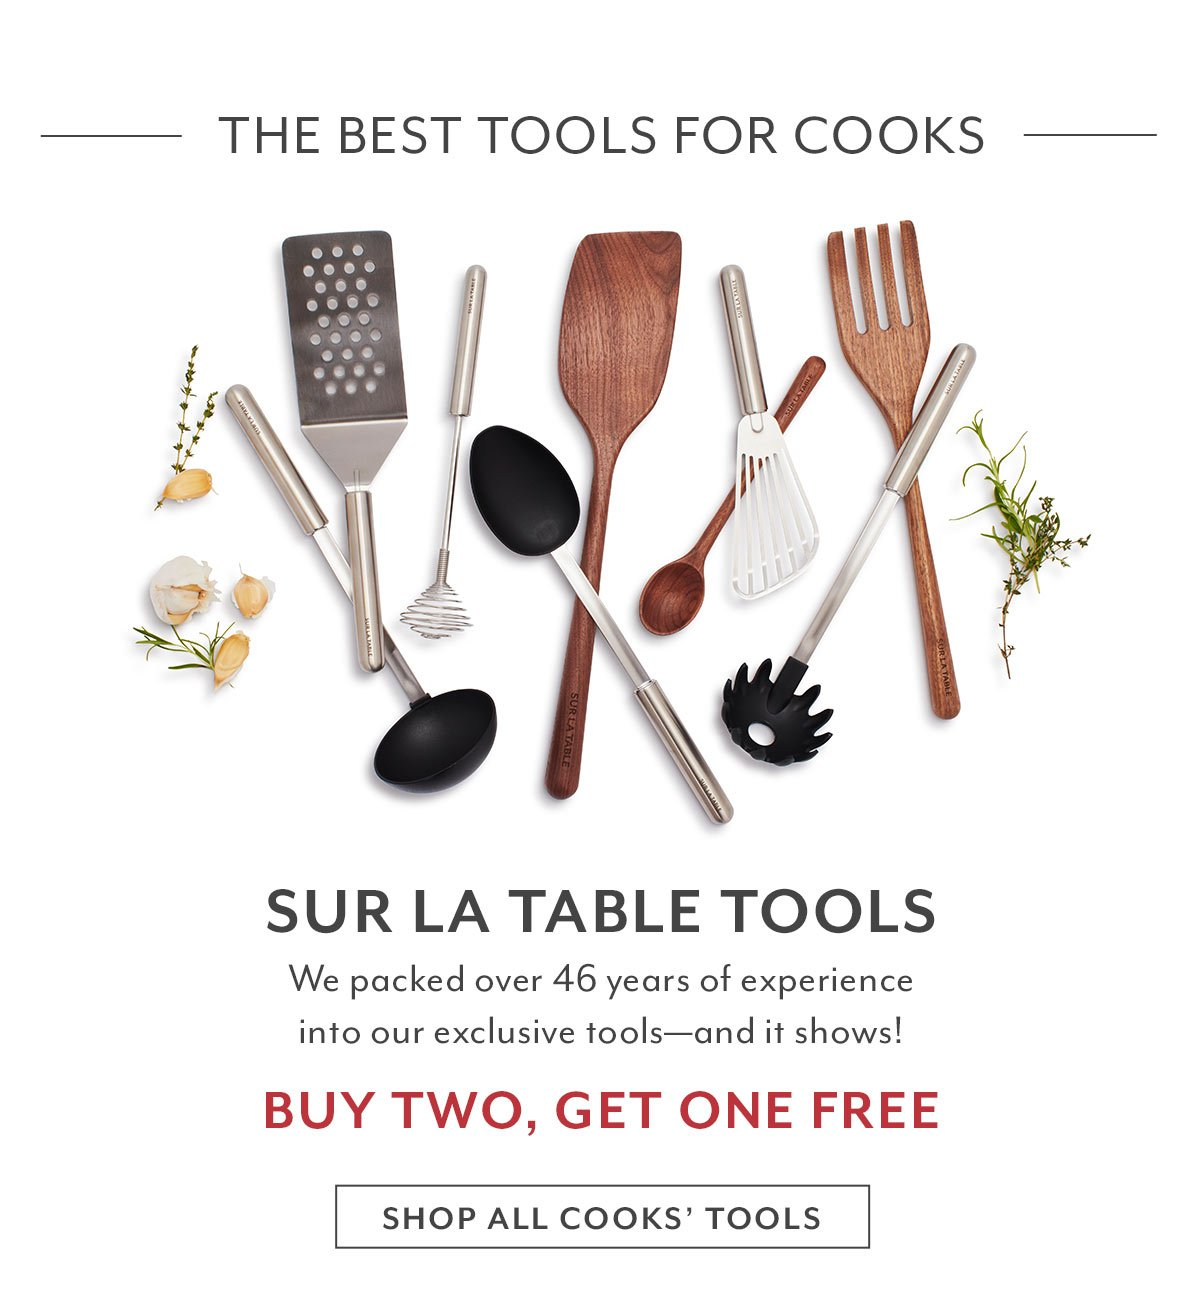 Sur La Table Tools